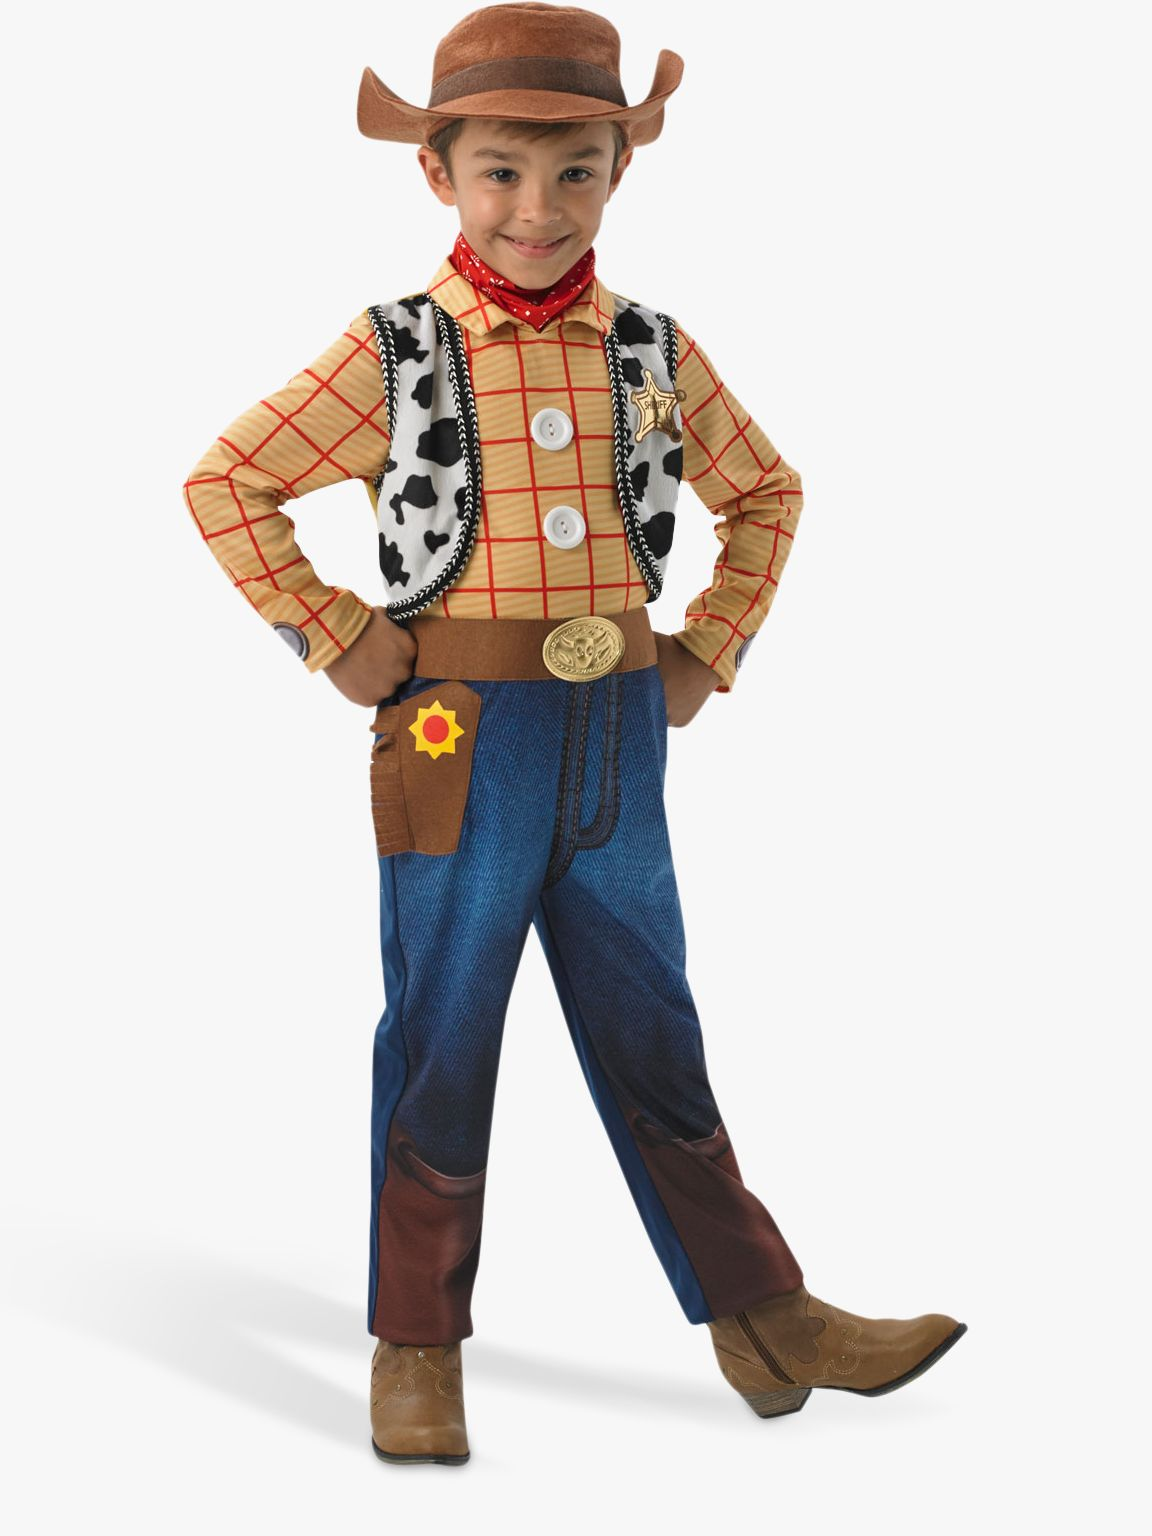 Rubies Toy Story Woody Deluxe Children's Costume, 3-4 years